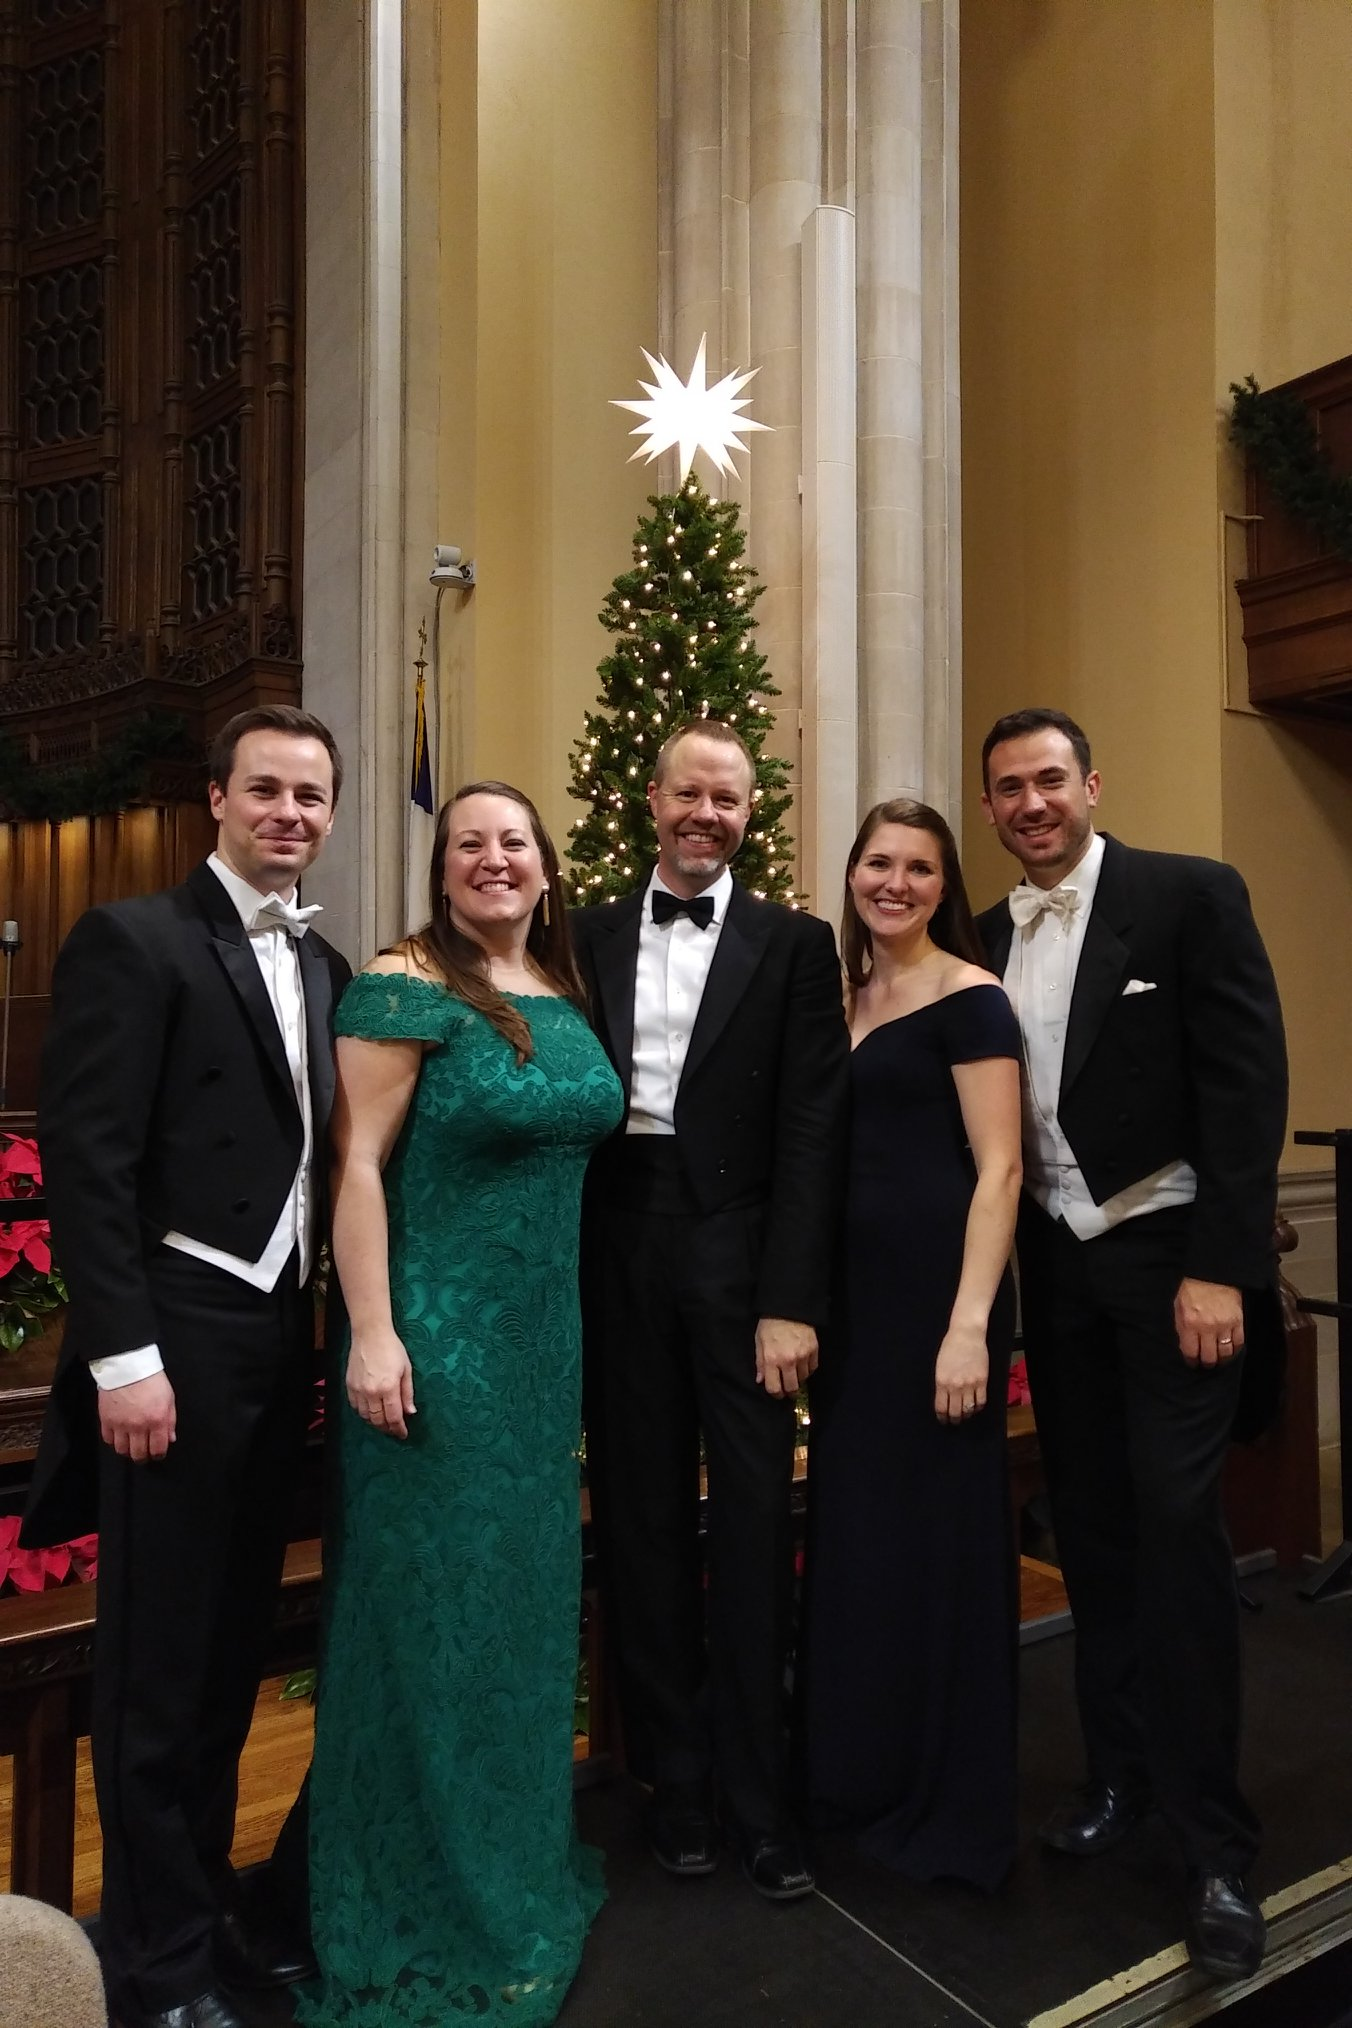 Messiah with Winston-Salem Symphony, 2018. From R-L, Patrick Muehleise, Clara Osowski, Christopher Gilliam, Margaret Carpenter Haigh, and John Buffett.